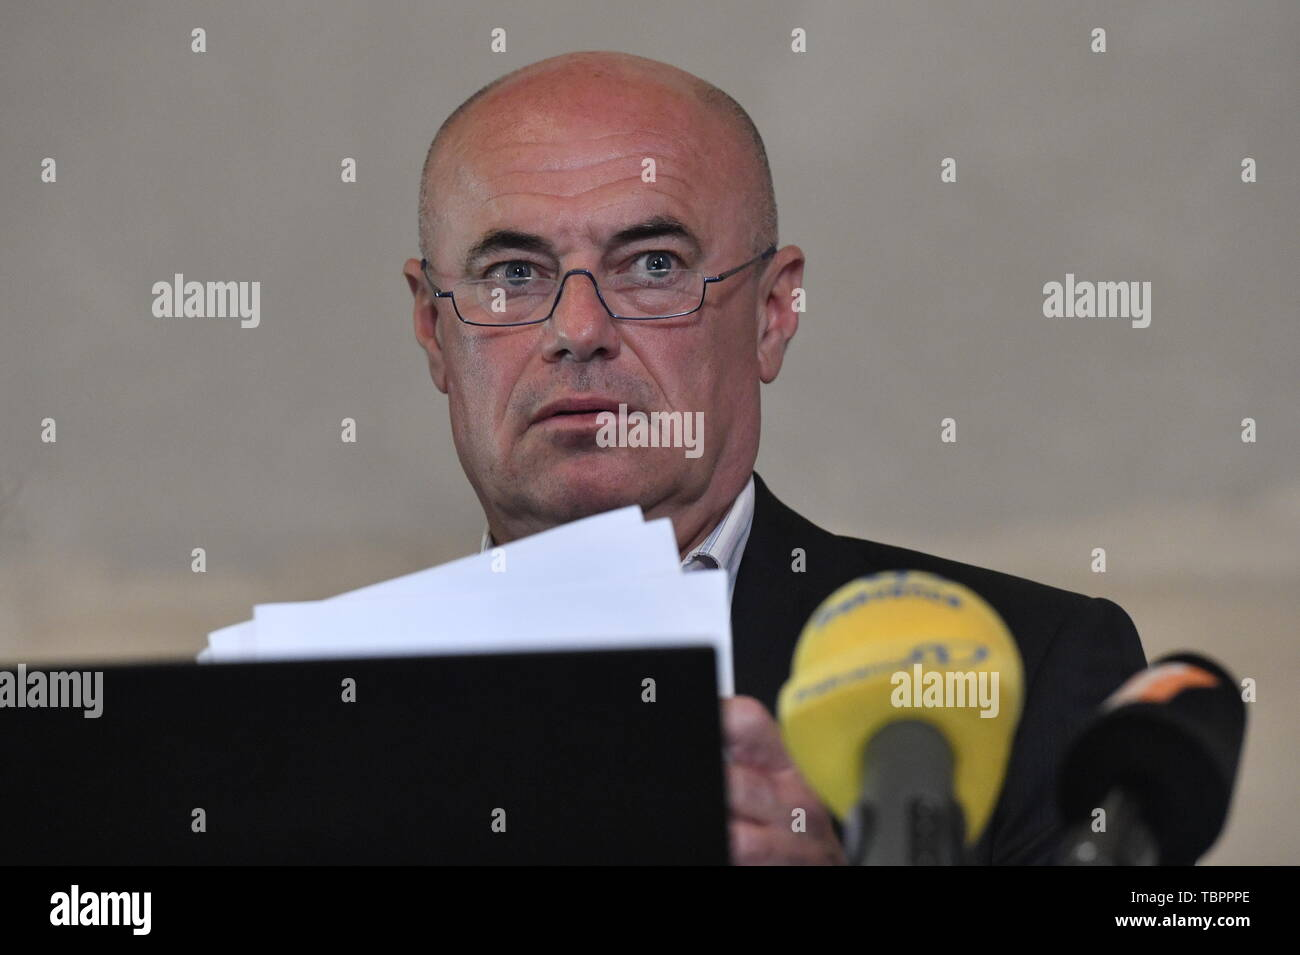 Prague, Czech Republic. 03rd June, 2019. Ivan Moravek, acting head of the National Gallery Prague (NGP), speaks during a press conference on the current situation in the gallery, on June 3, 2019, in Prague, Czech Republic. Credit: Vit Simanek/CTK Photo/Alamy Live News Stock Photo